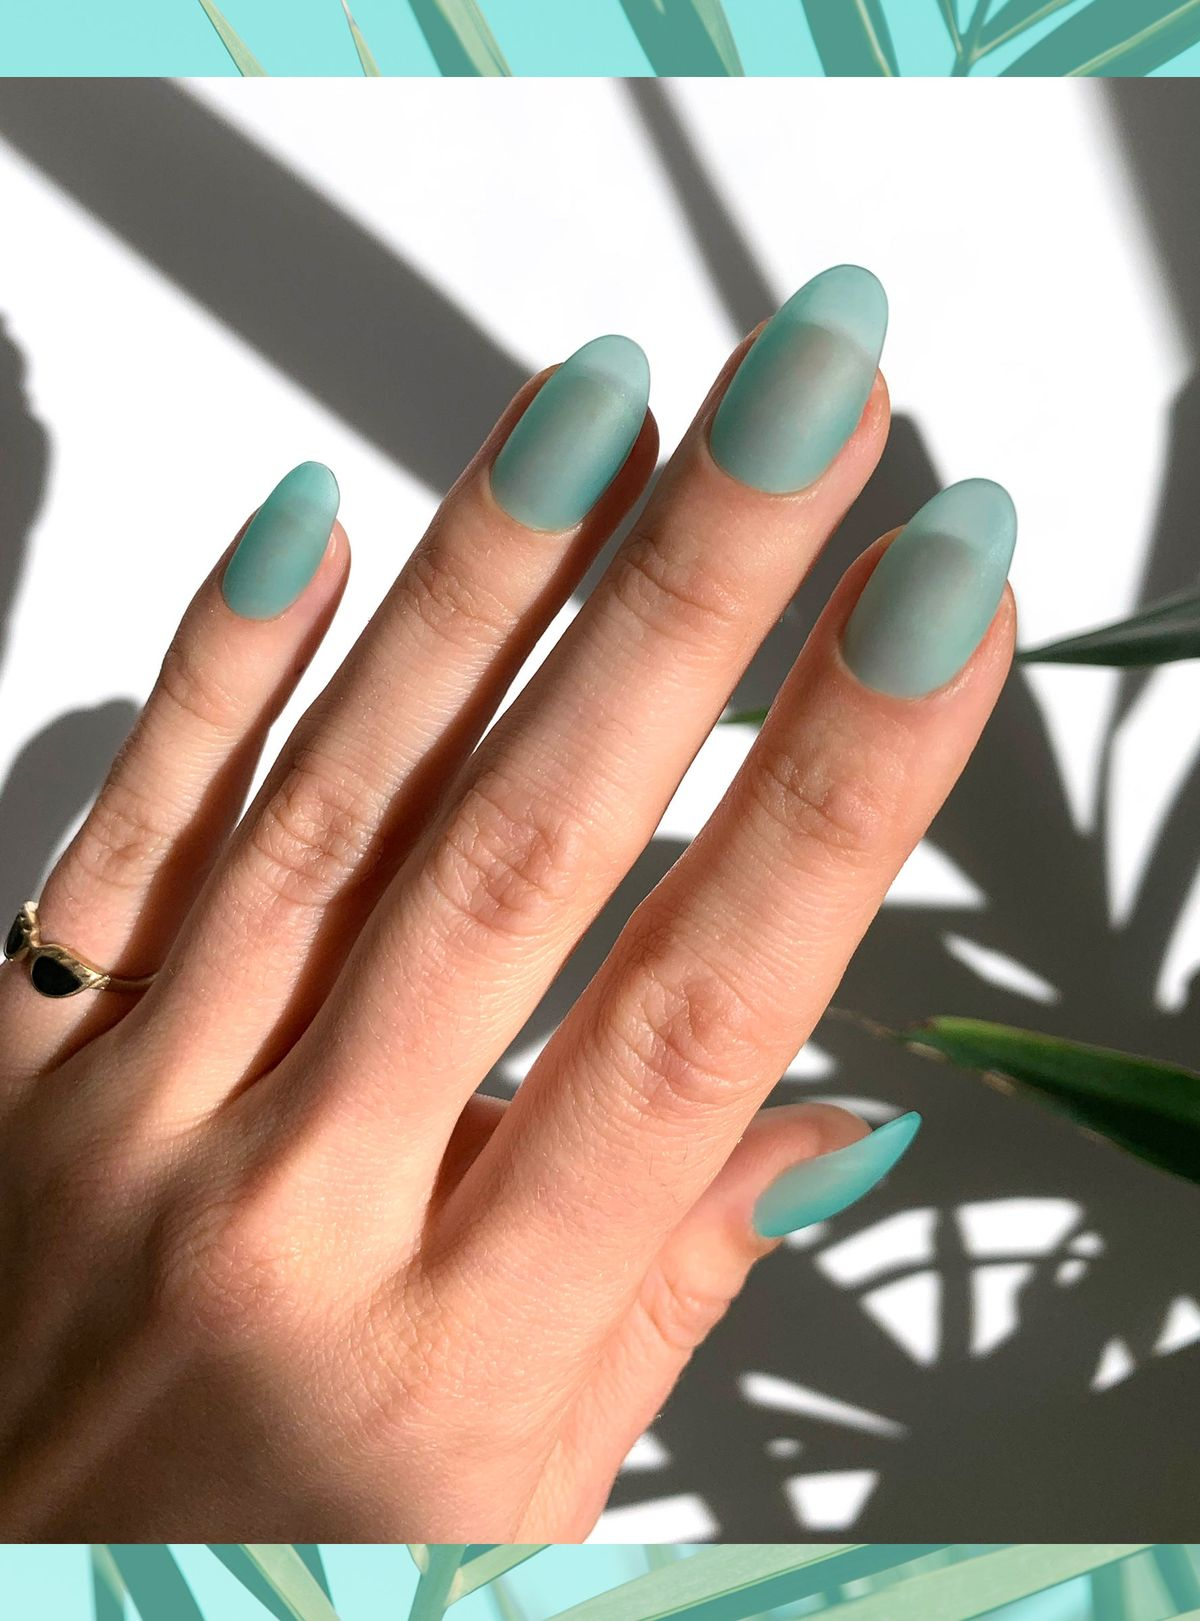 Seaglass Nails Are The New Jelly Nails For Fall+#refinery29